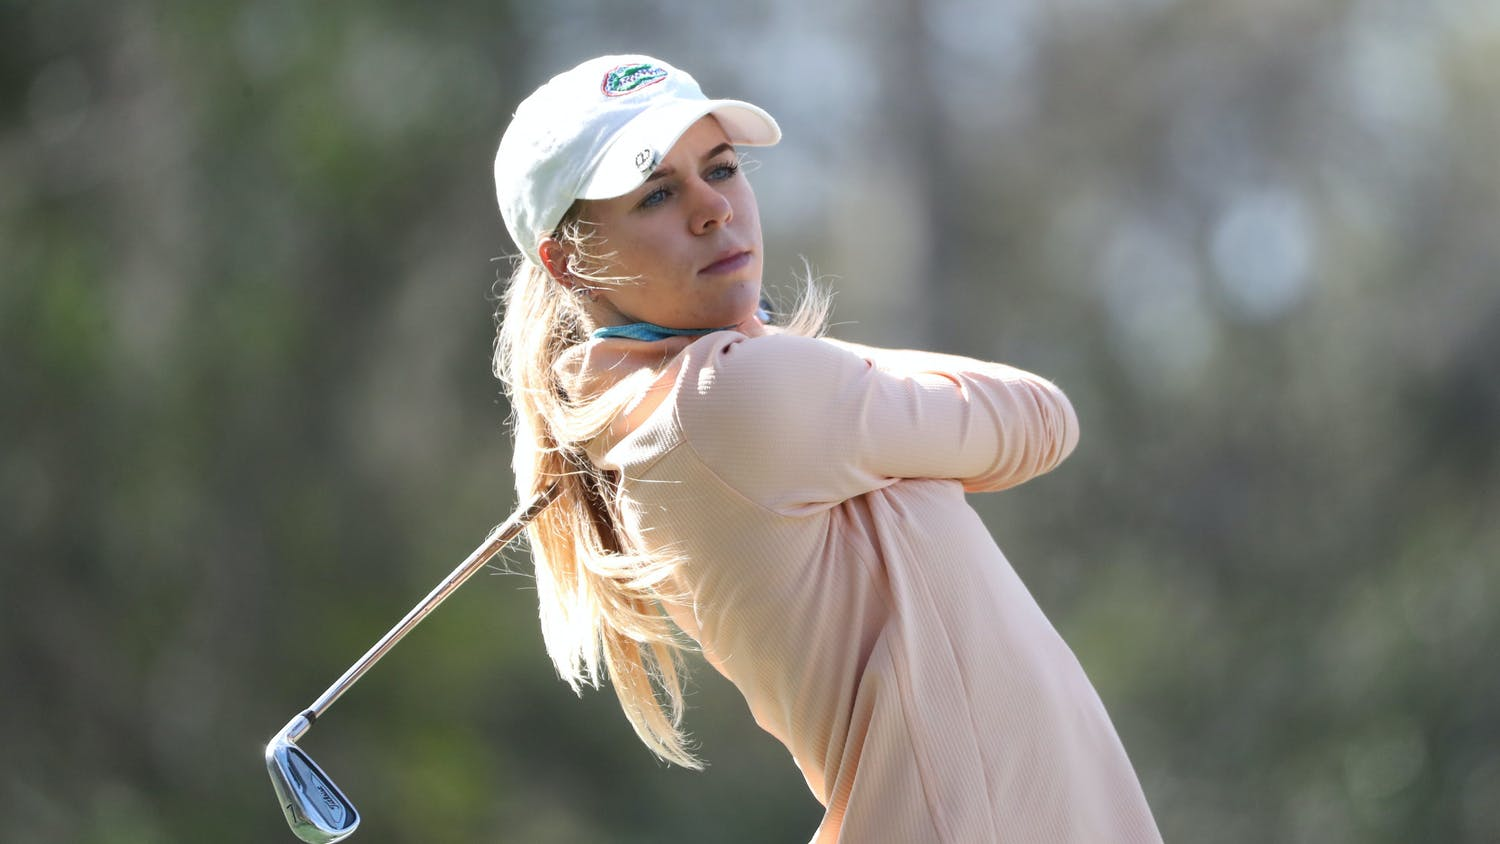 After a 16-day break, the Florida women's golf team returns to the course Friday at the Liz Murphey Collegiate Classic in Athens, Georgia. Photo courtesy of the UAA.